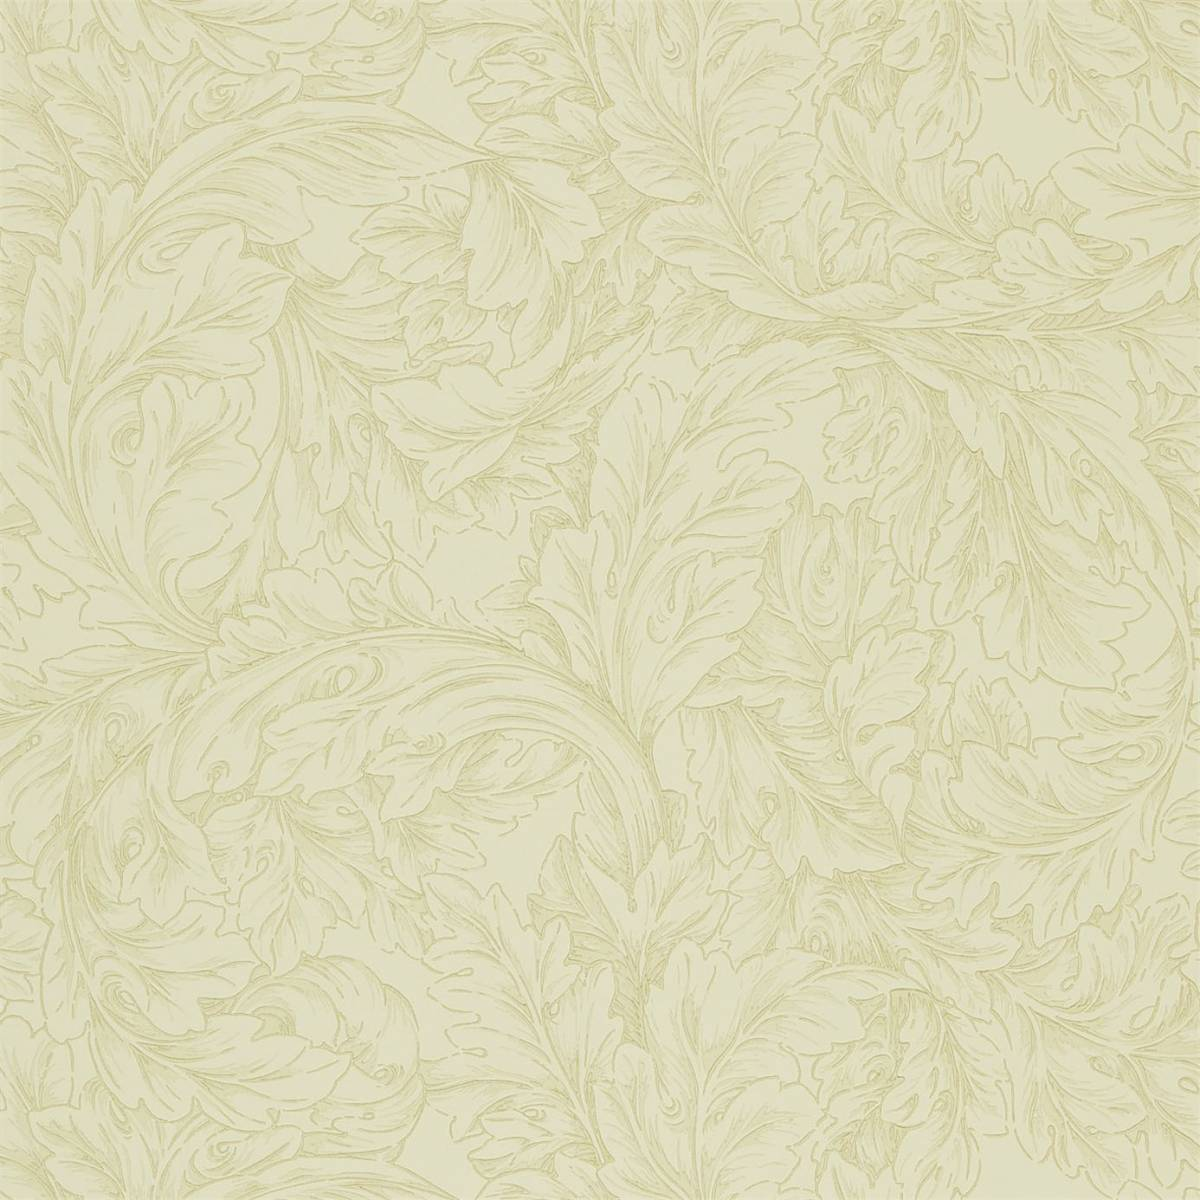 William Morris & Co Compendium II Wallpapers Acanthus Scroll Wallpaper - Parchment/Hemp - 210404. Loading zoom